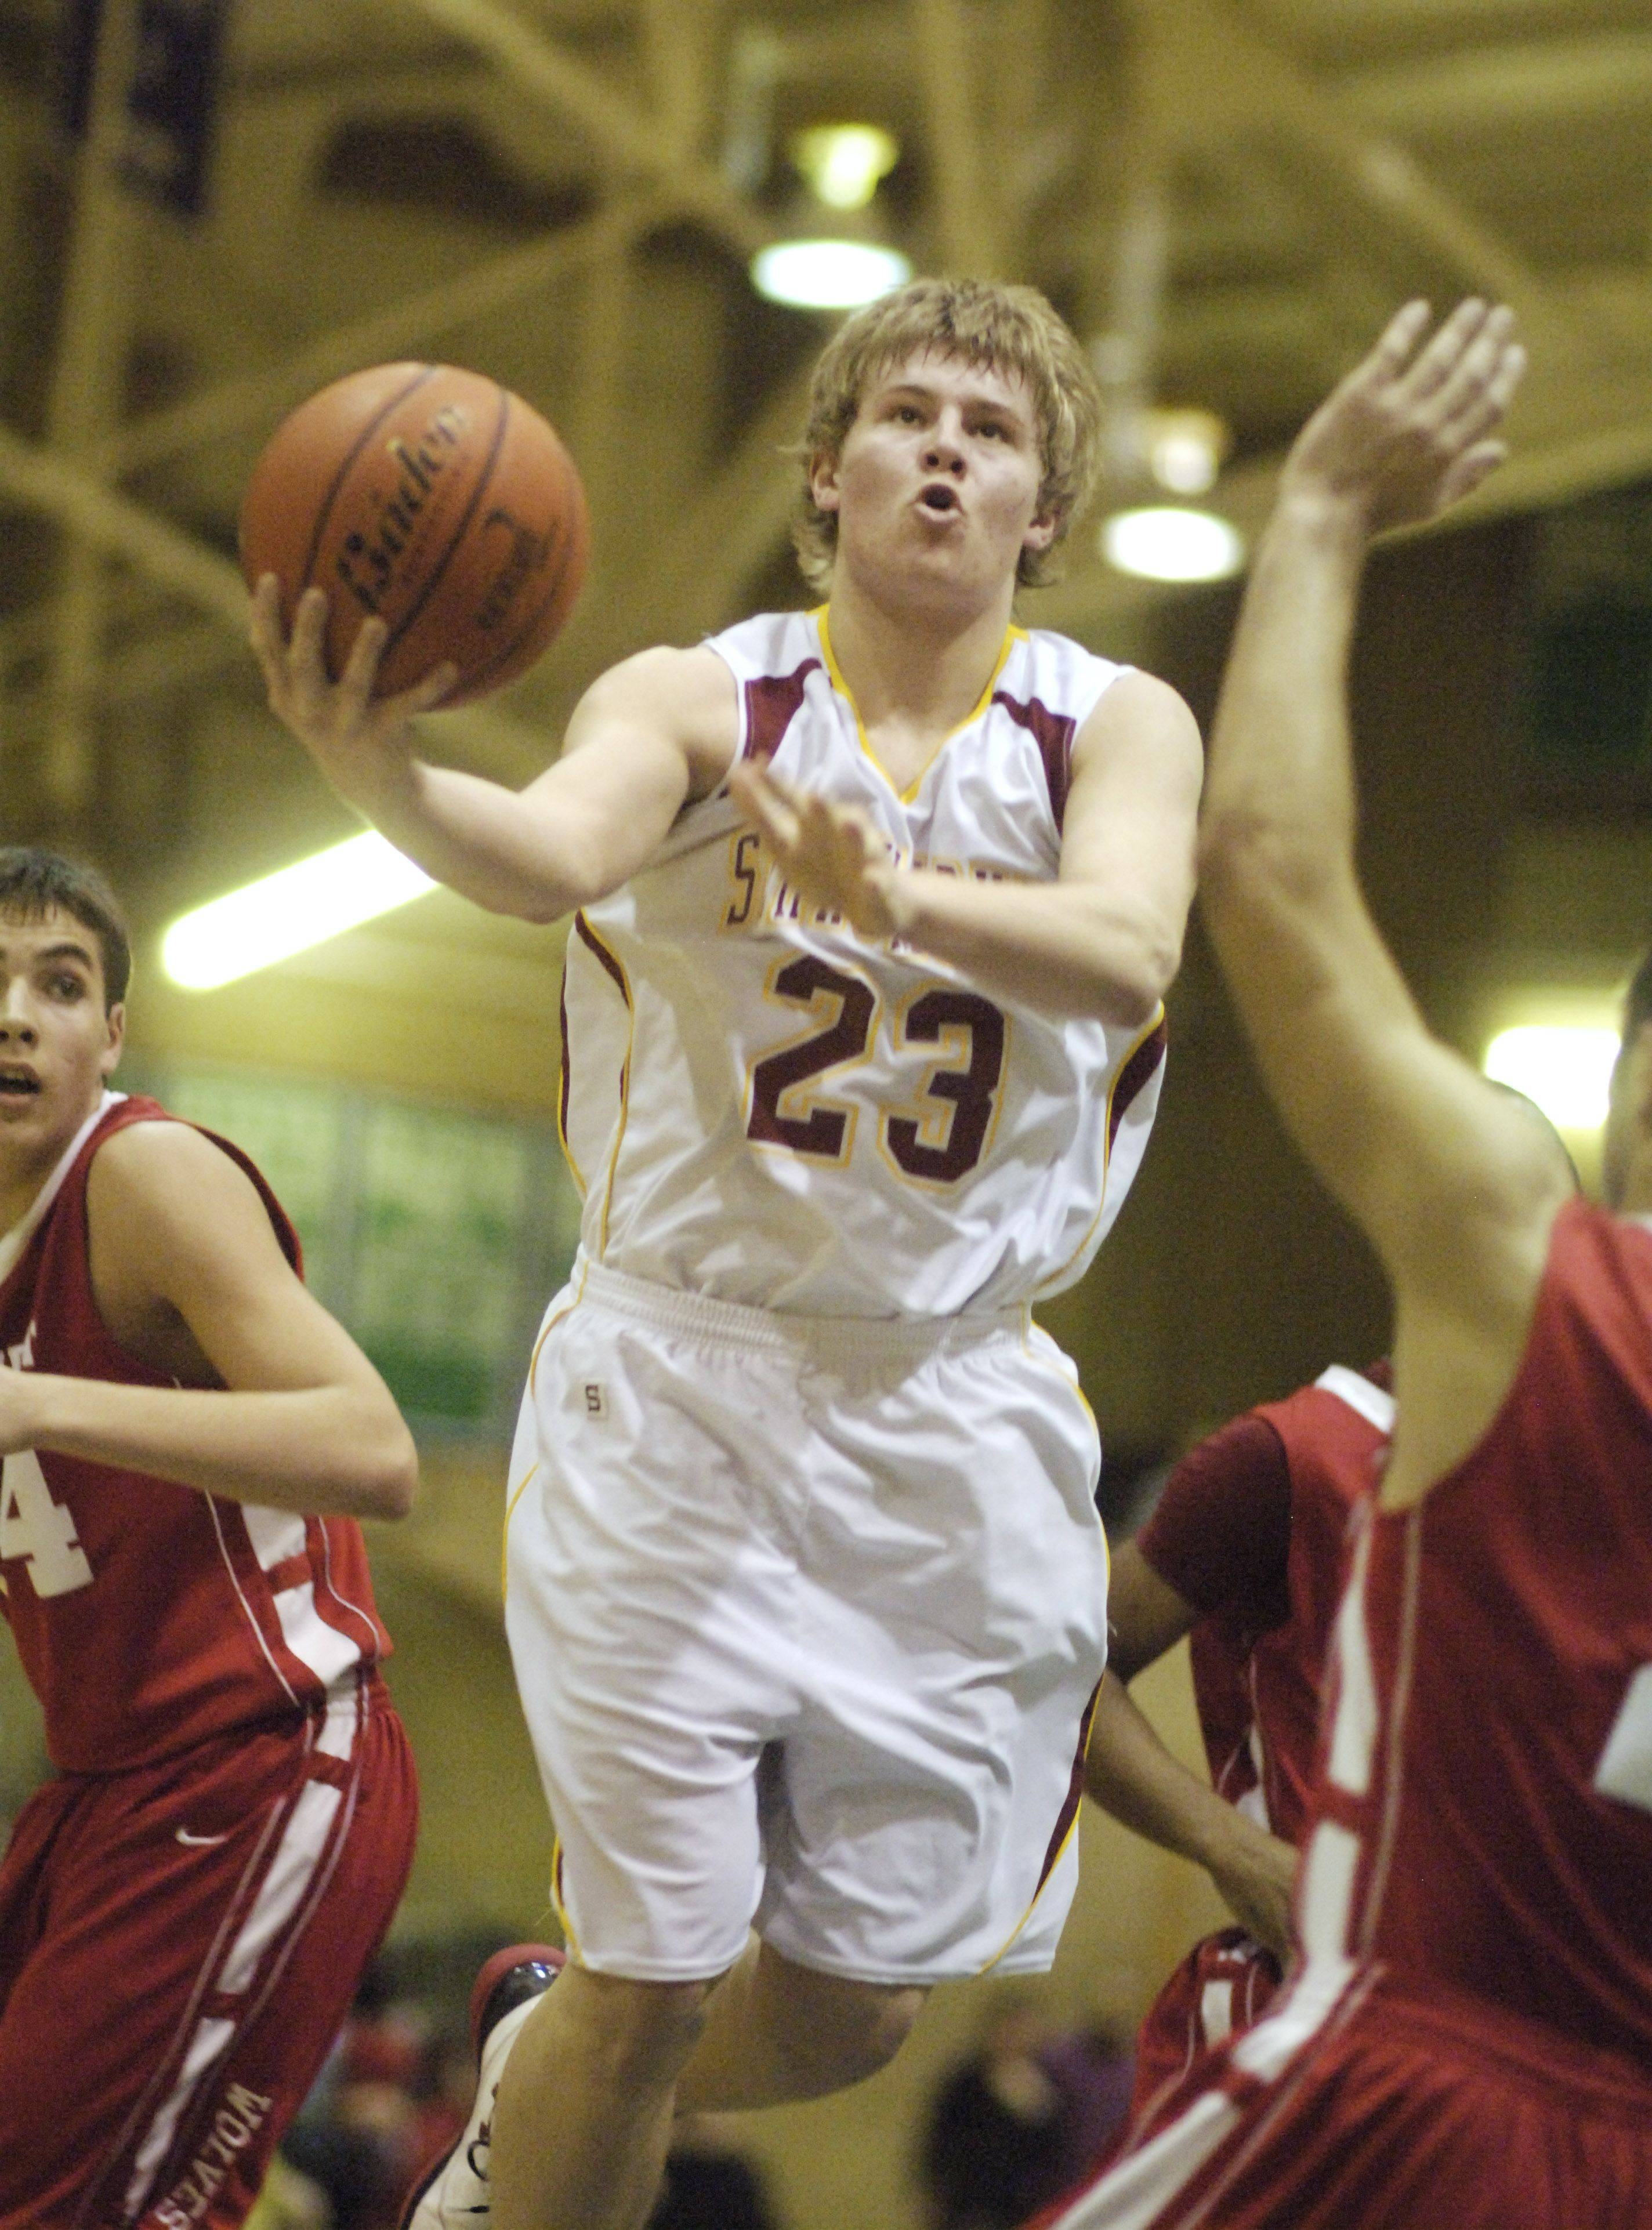 Images: Schaumburg vs. New Trier, boys sectional semifinal basketball